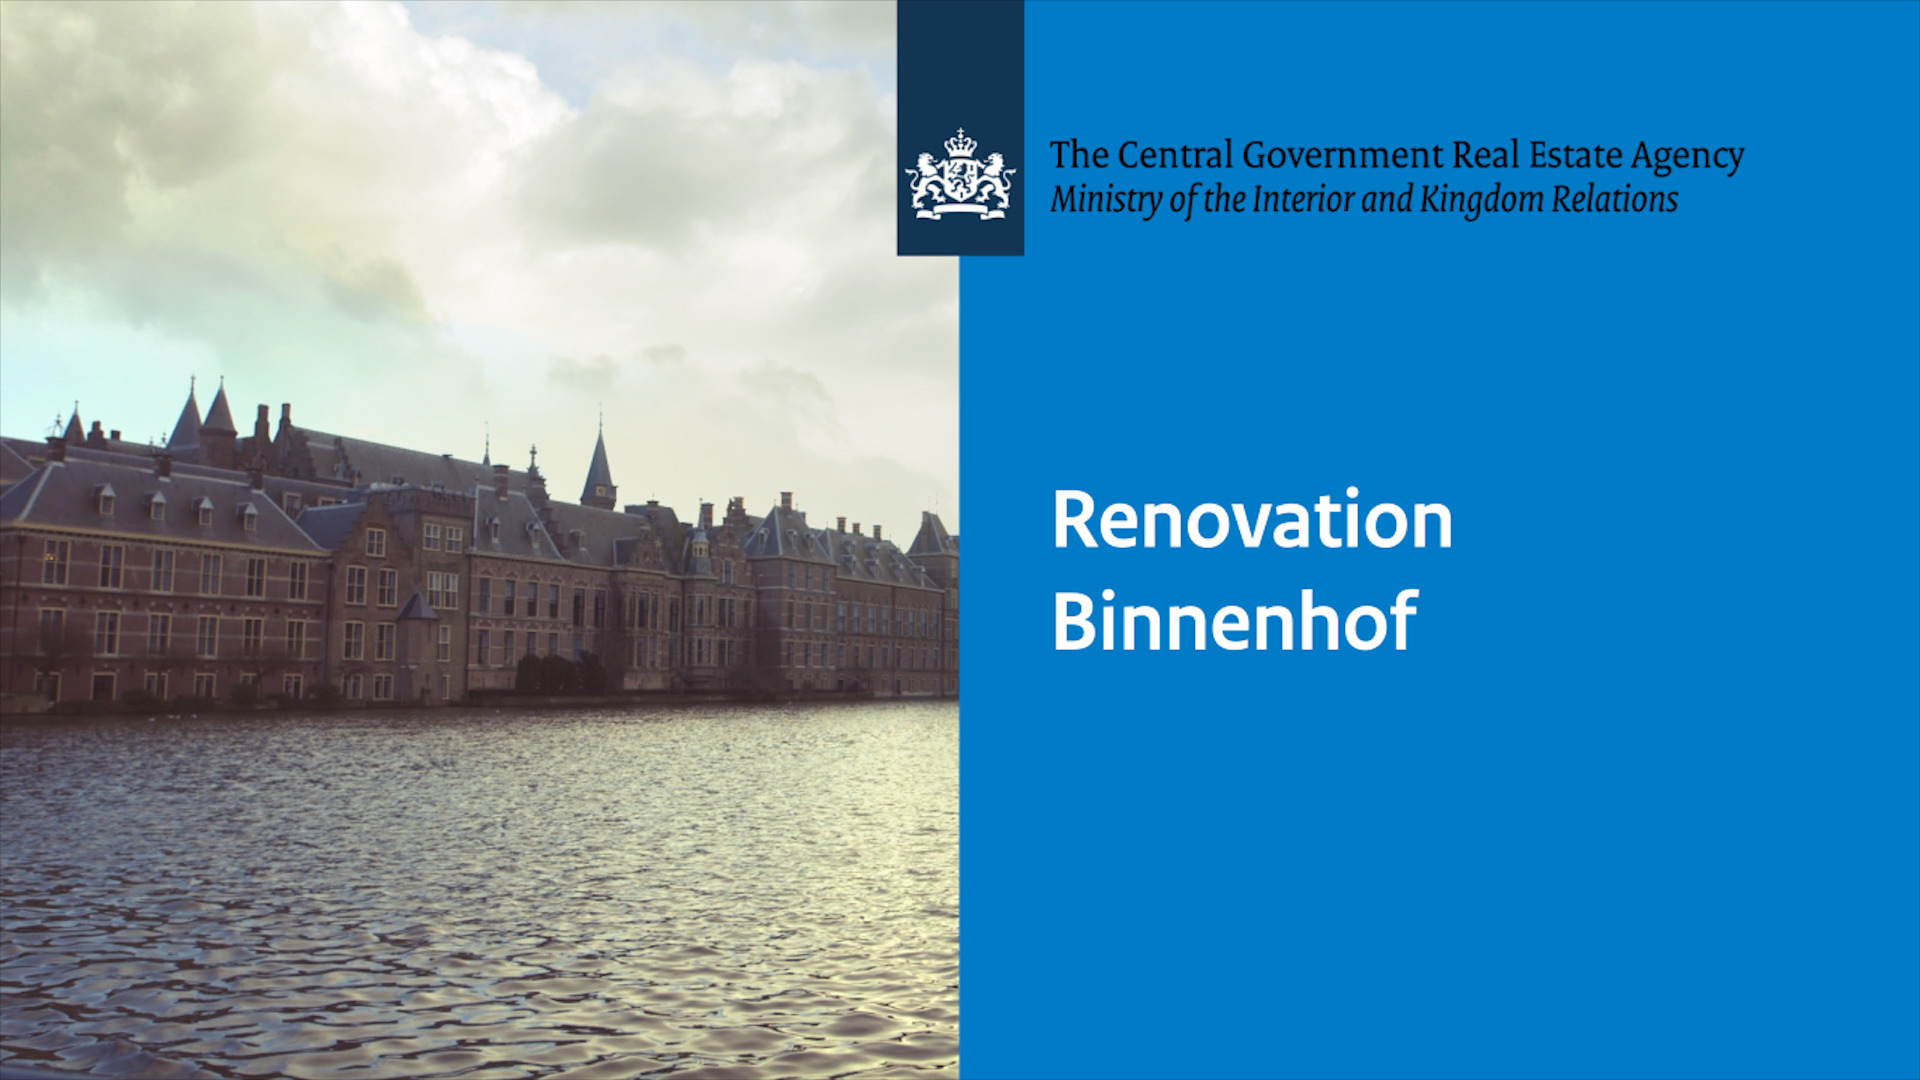 Image for video: Renovation Binnenhof